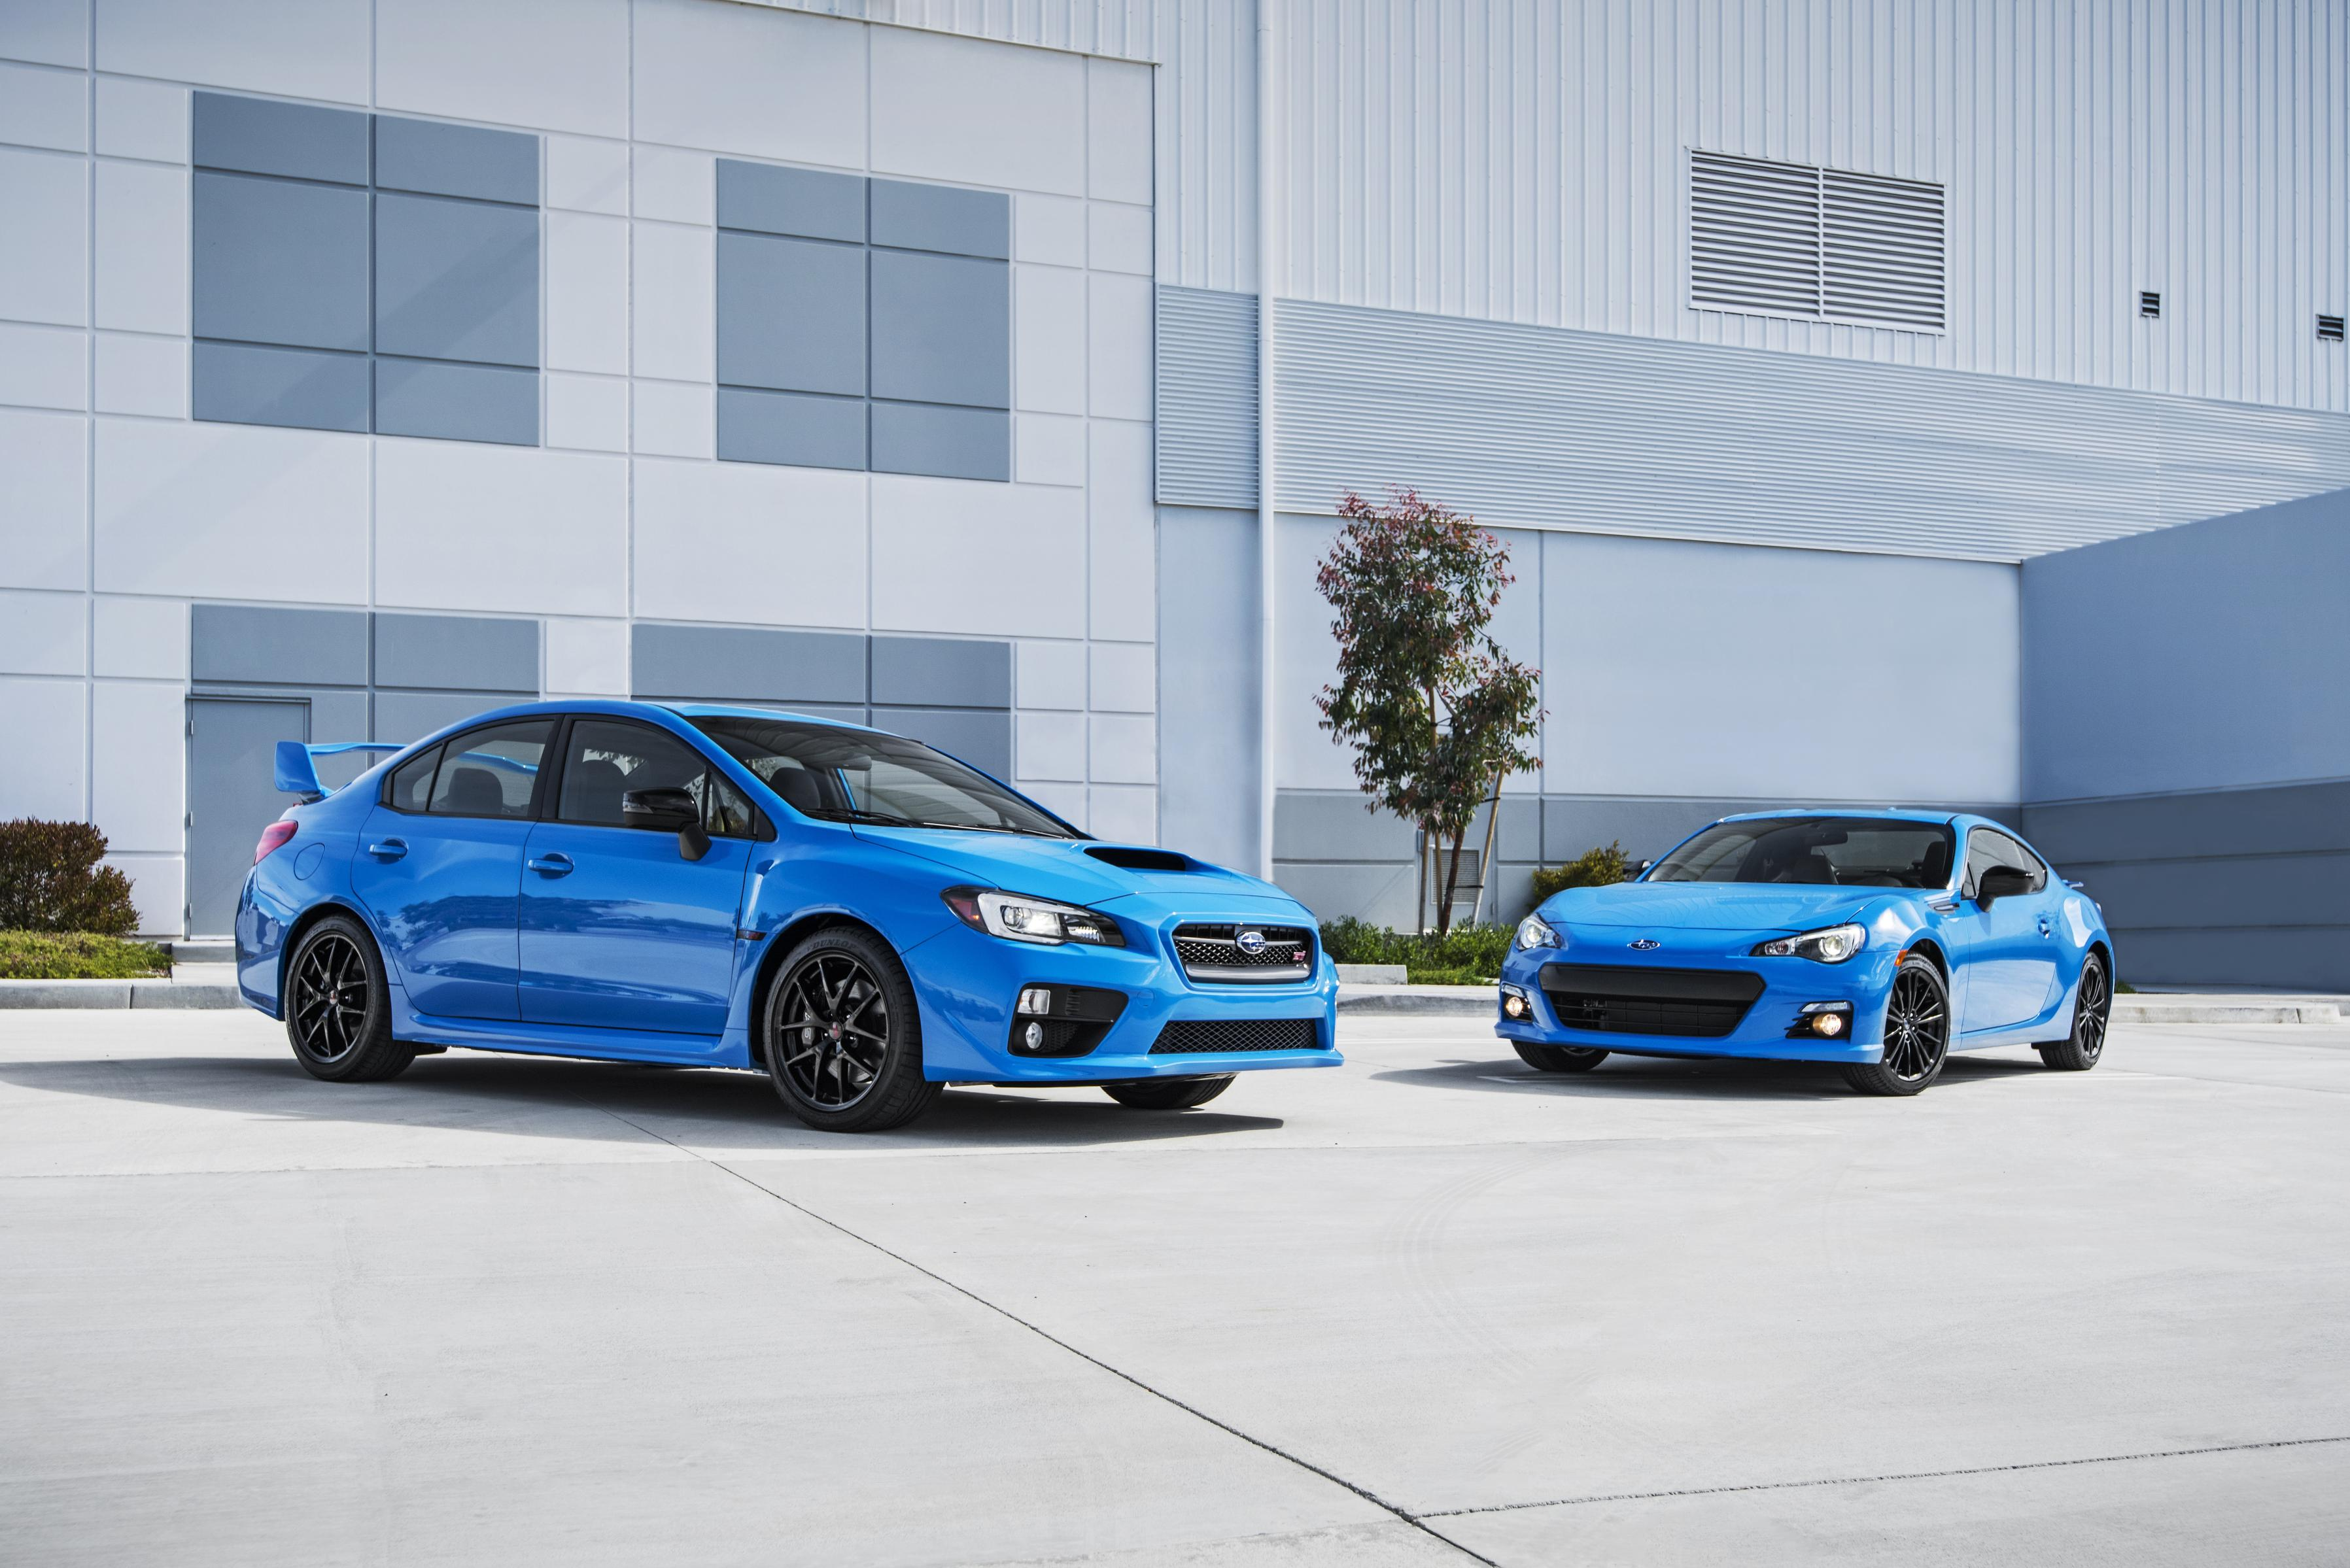 2016 subaru brz series hyperblue joins the 2016 subaru wrx sti series hyperblue limited edition. Black Bedroom Furniture Sets. Home Design Ideas